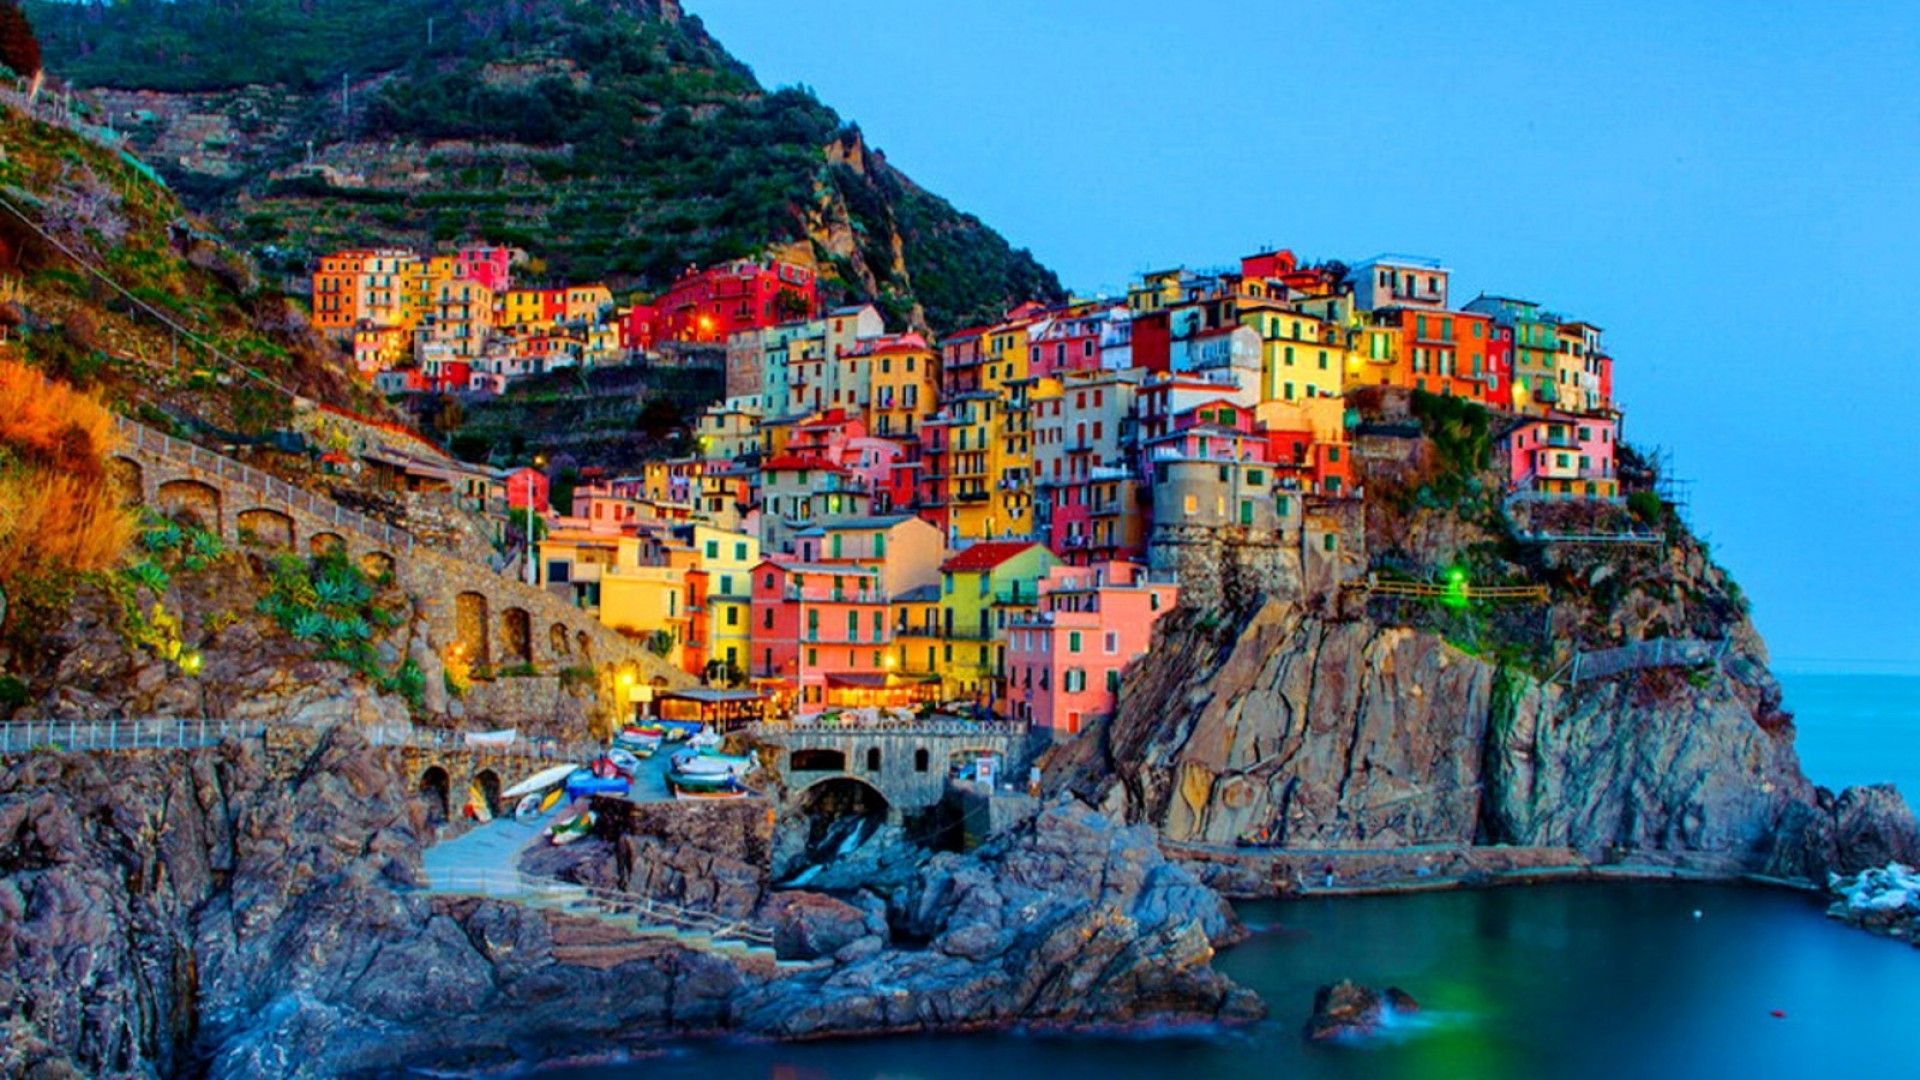 Italy Hd Desktop Wallpapers Top Free Italy Hd Desktop